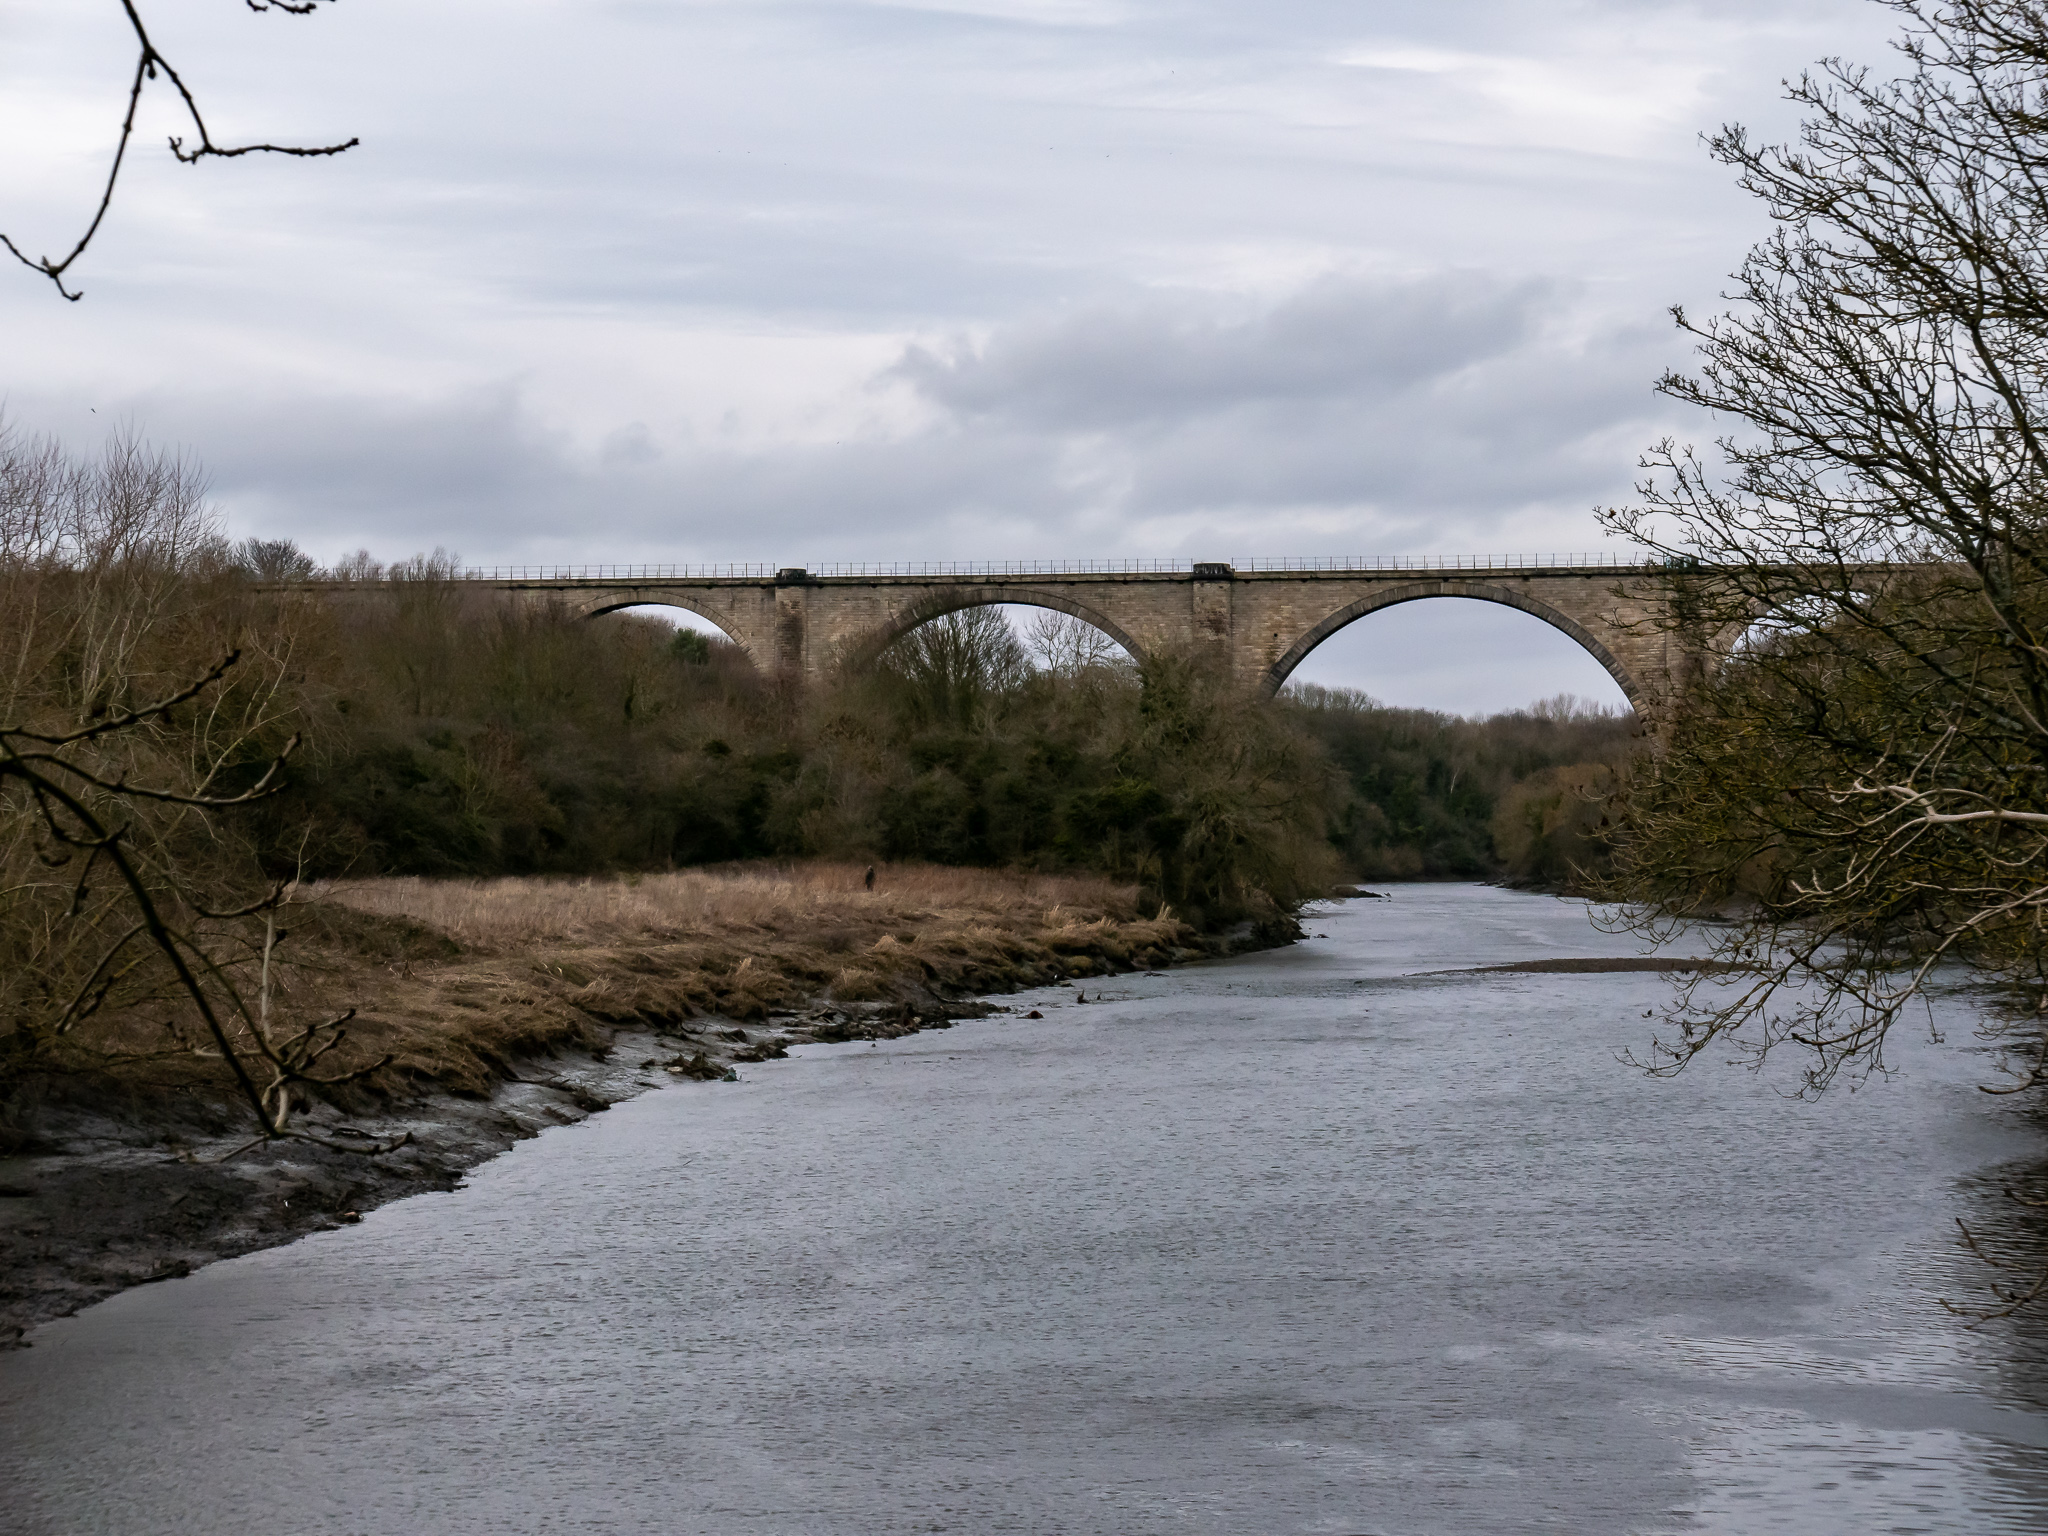 Leamside Viaduct over River Wear